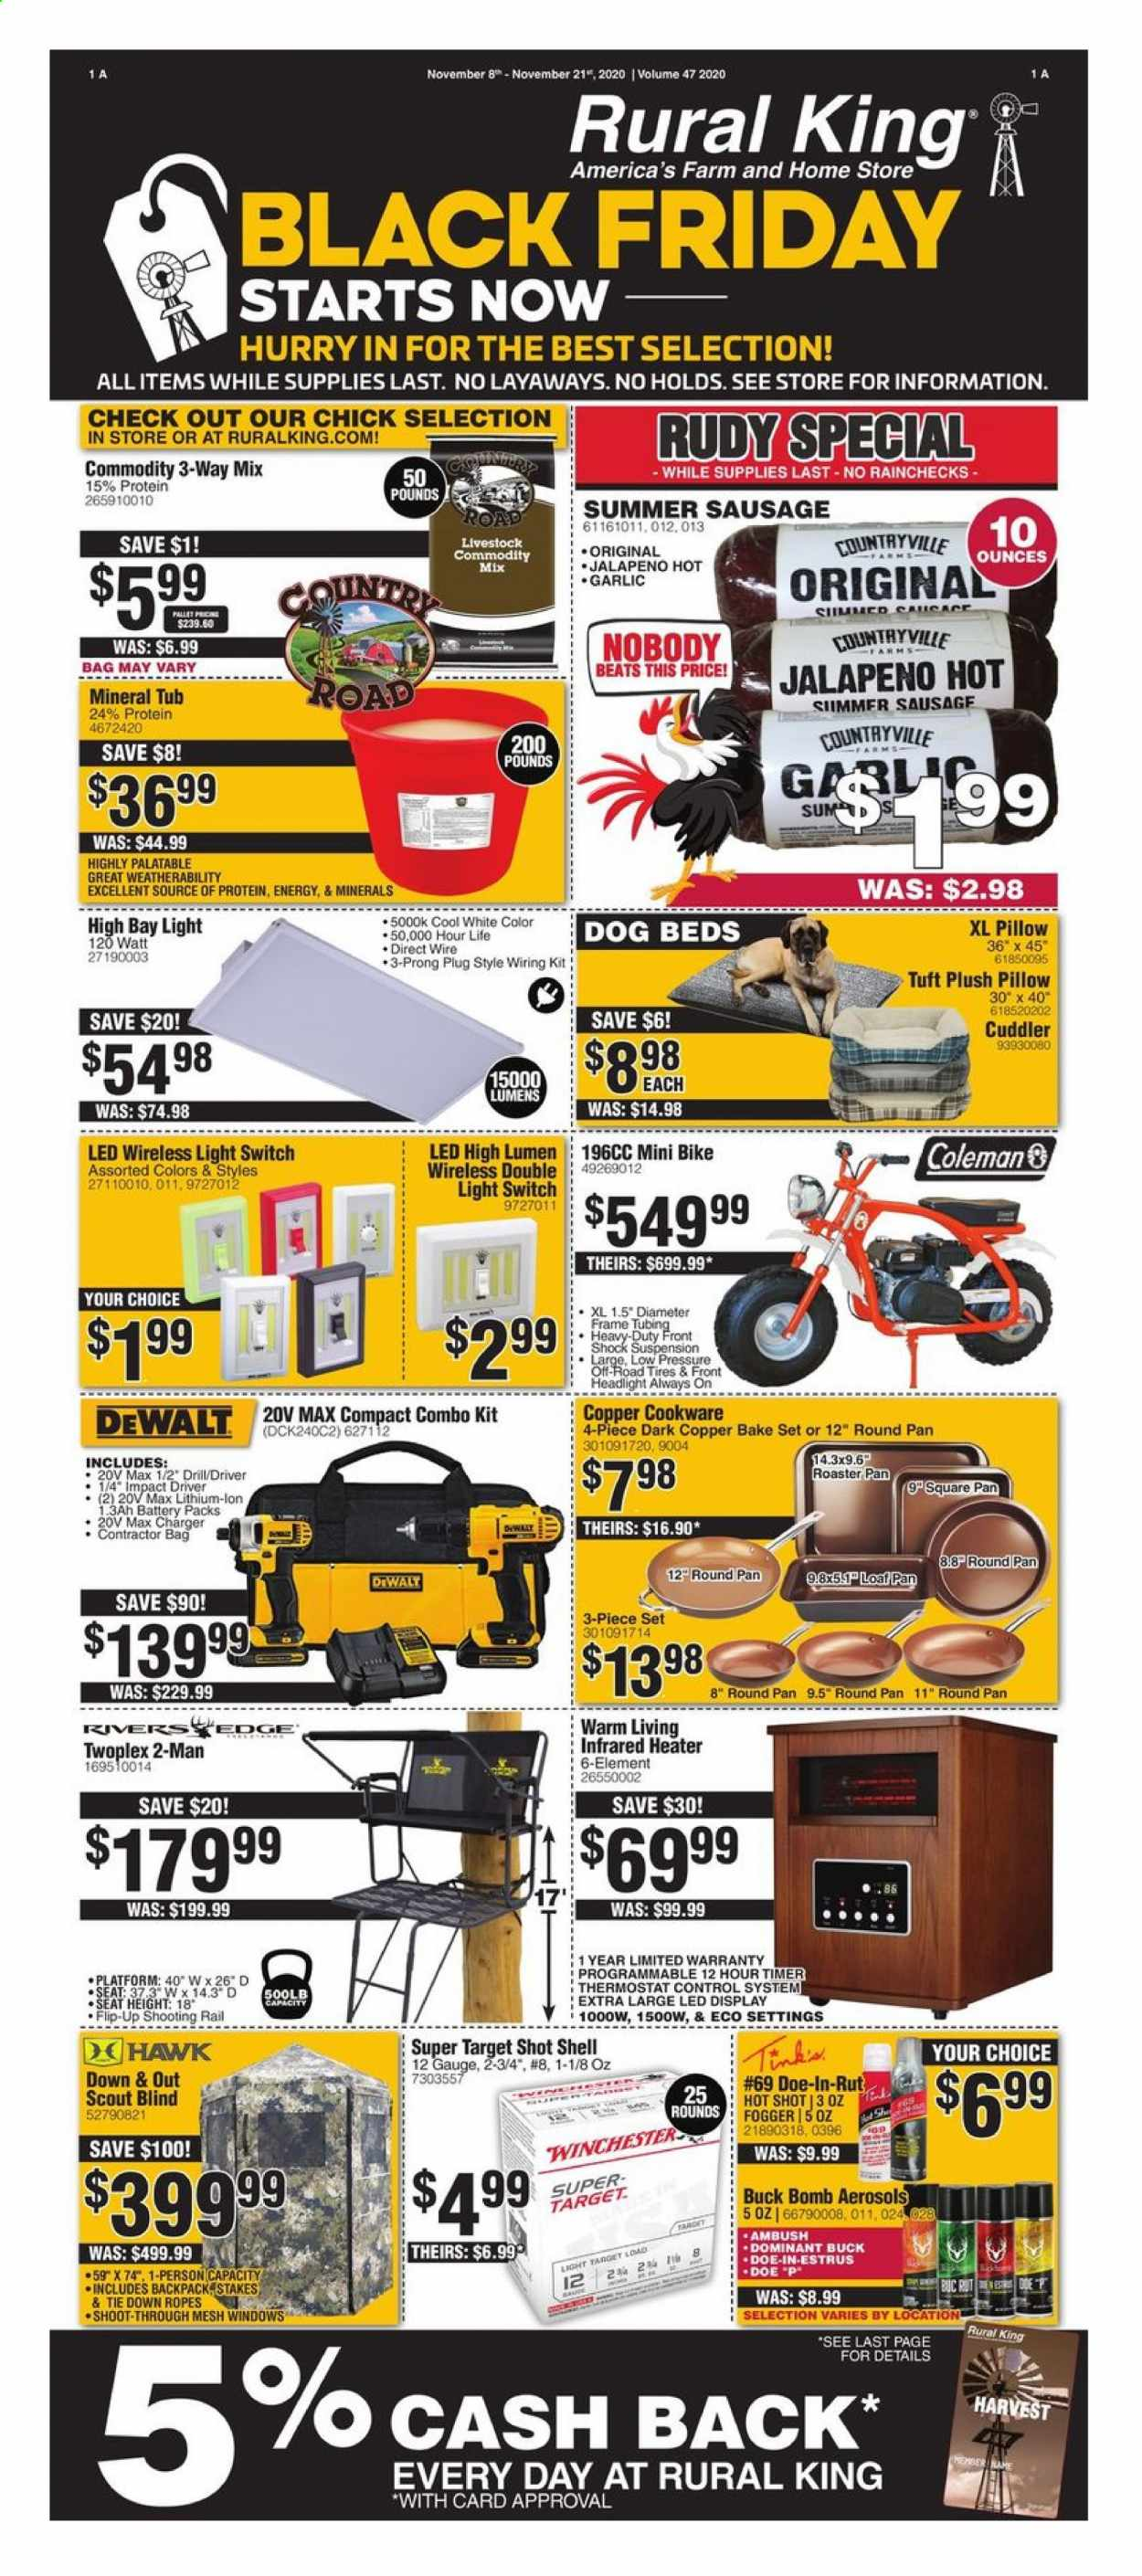 Rural King Flyer - 11.08.2020 - 11.21.2020 - Sales products - Coleman, garlic, jalapeño, cookware set, pan, battery, pillow, dog bed, mineral tub, charger, Beats, roaster, Winchester, backpack, bag, tie, headlamp, switch, heater, DeWALT, drill, impact driver, combo kit, fogger, mini bike, wiring kit, Shell, tires. Page 1.